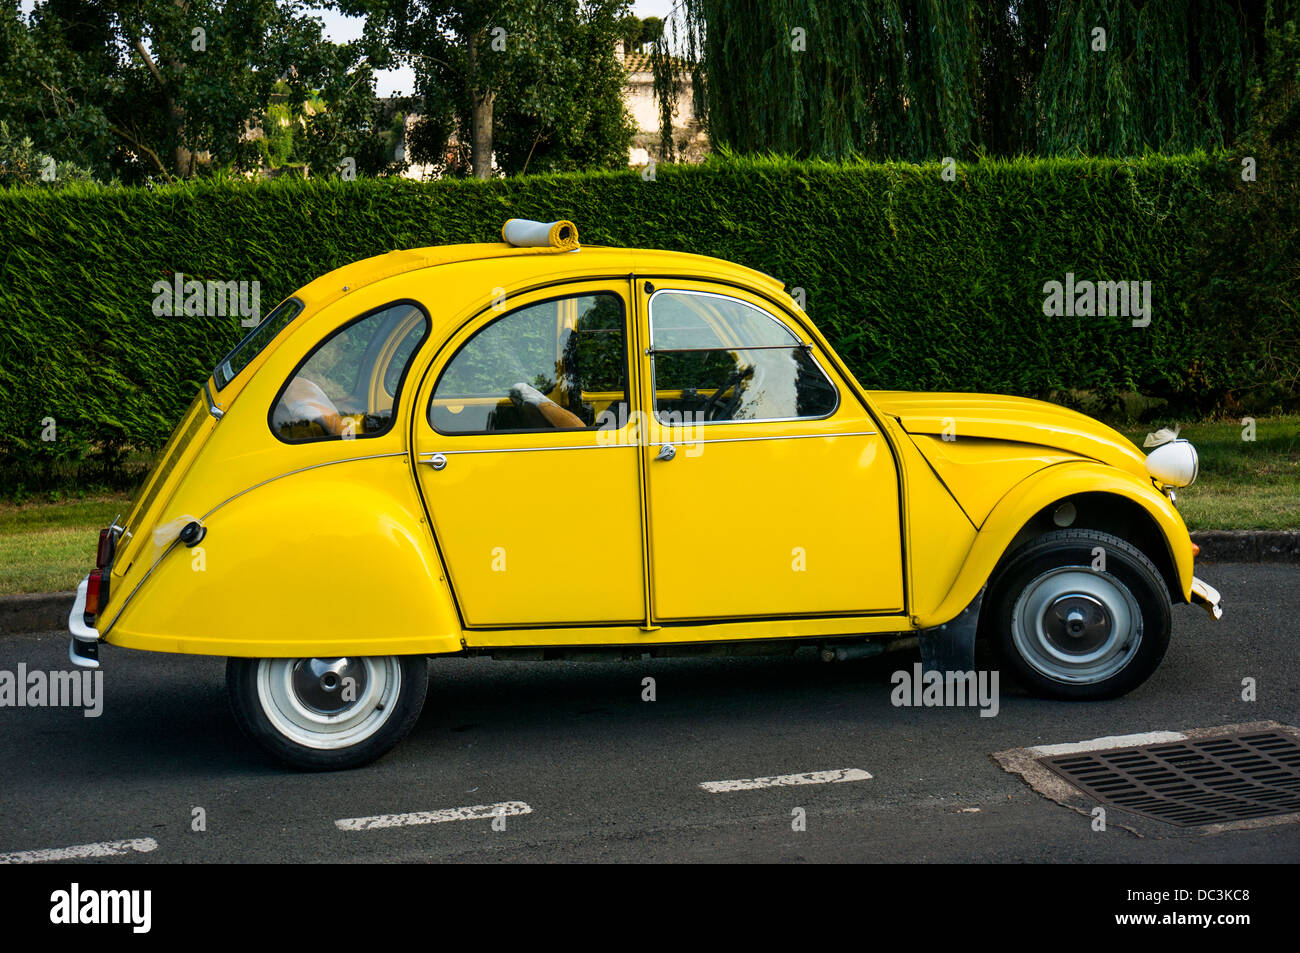 An old, bright yellow, iconic, Citroen 2CV car, parked in Amboise in the Indre-et-Loire department in central France. - Stock Image